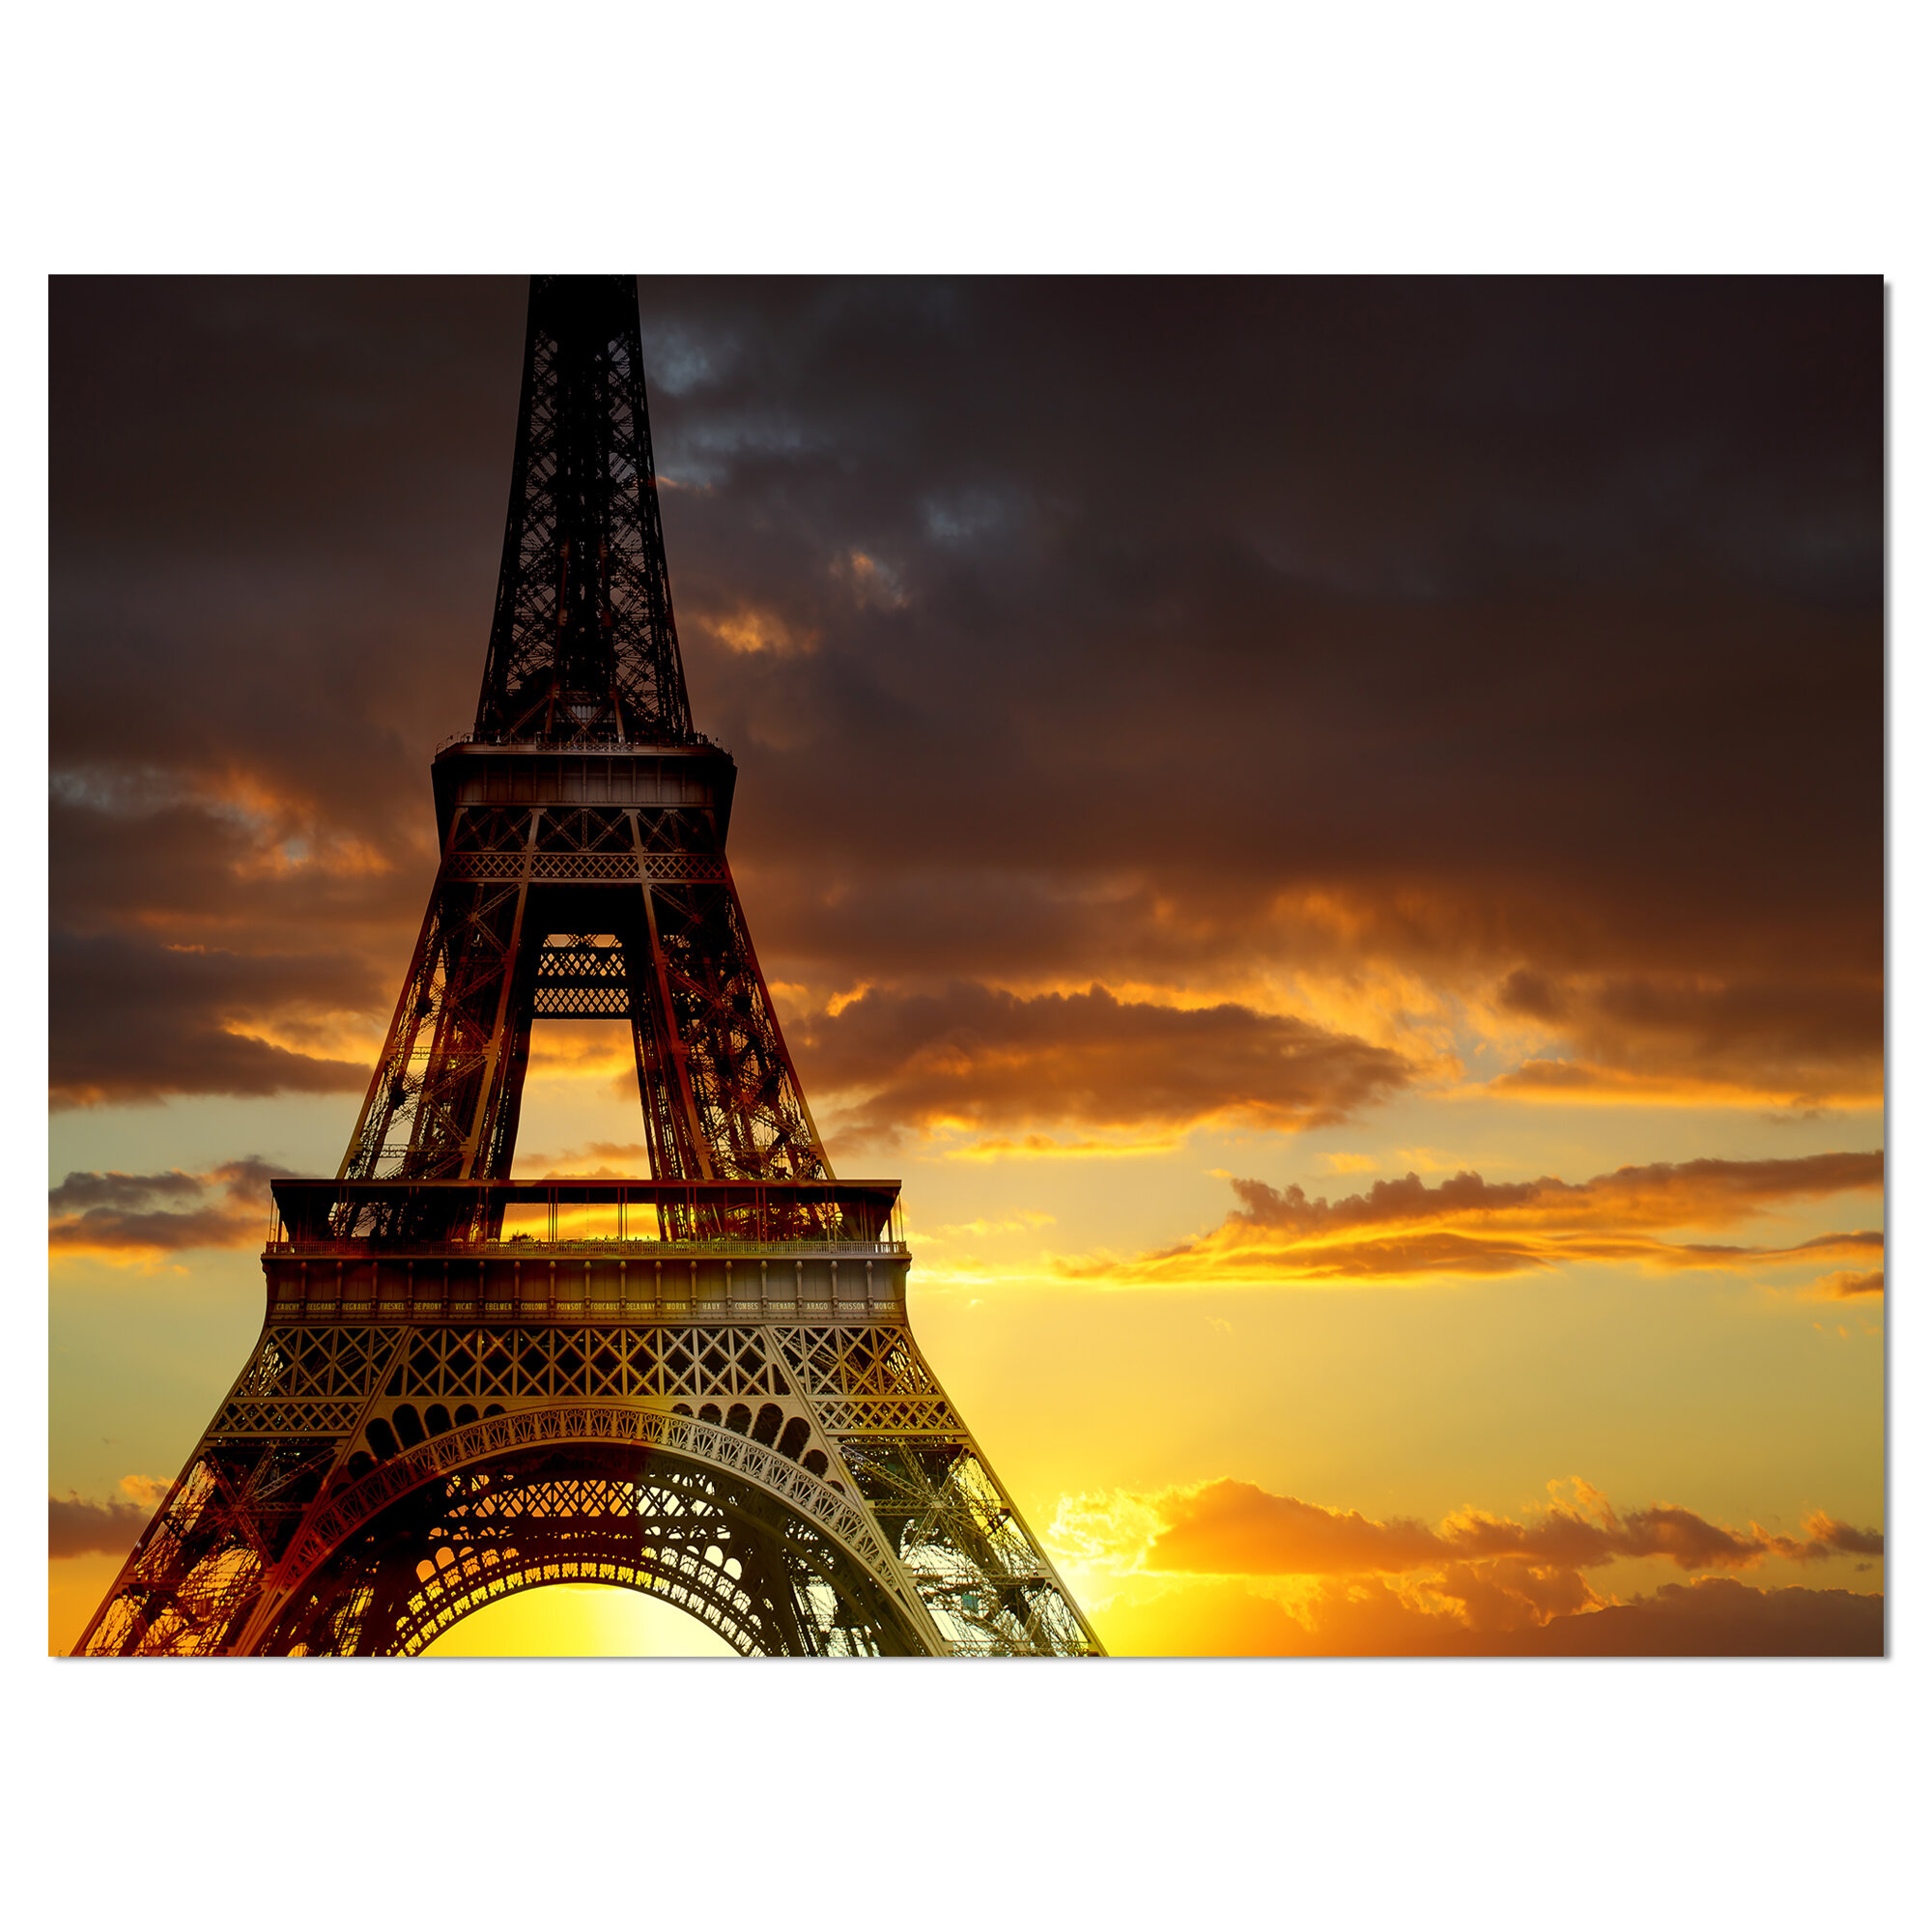 France  reflections Photo print canvas choose your size The Beauty of  Paris